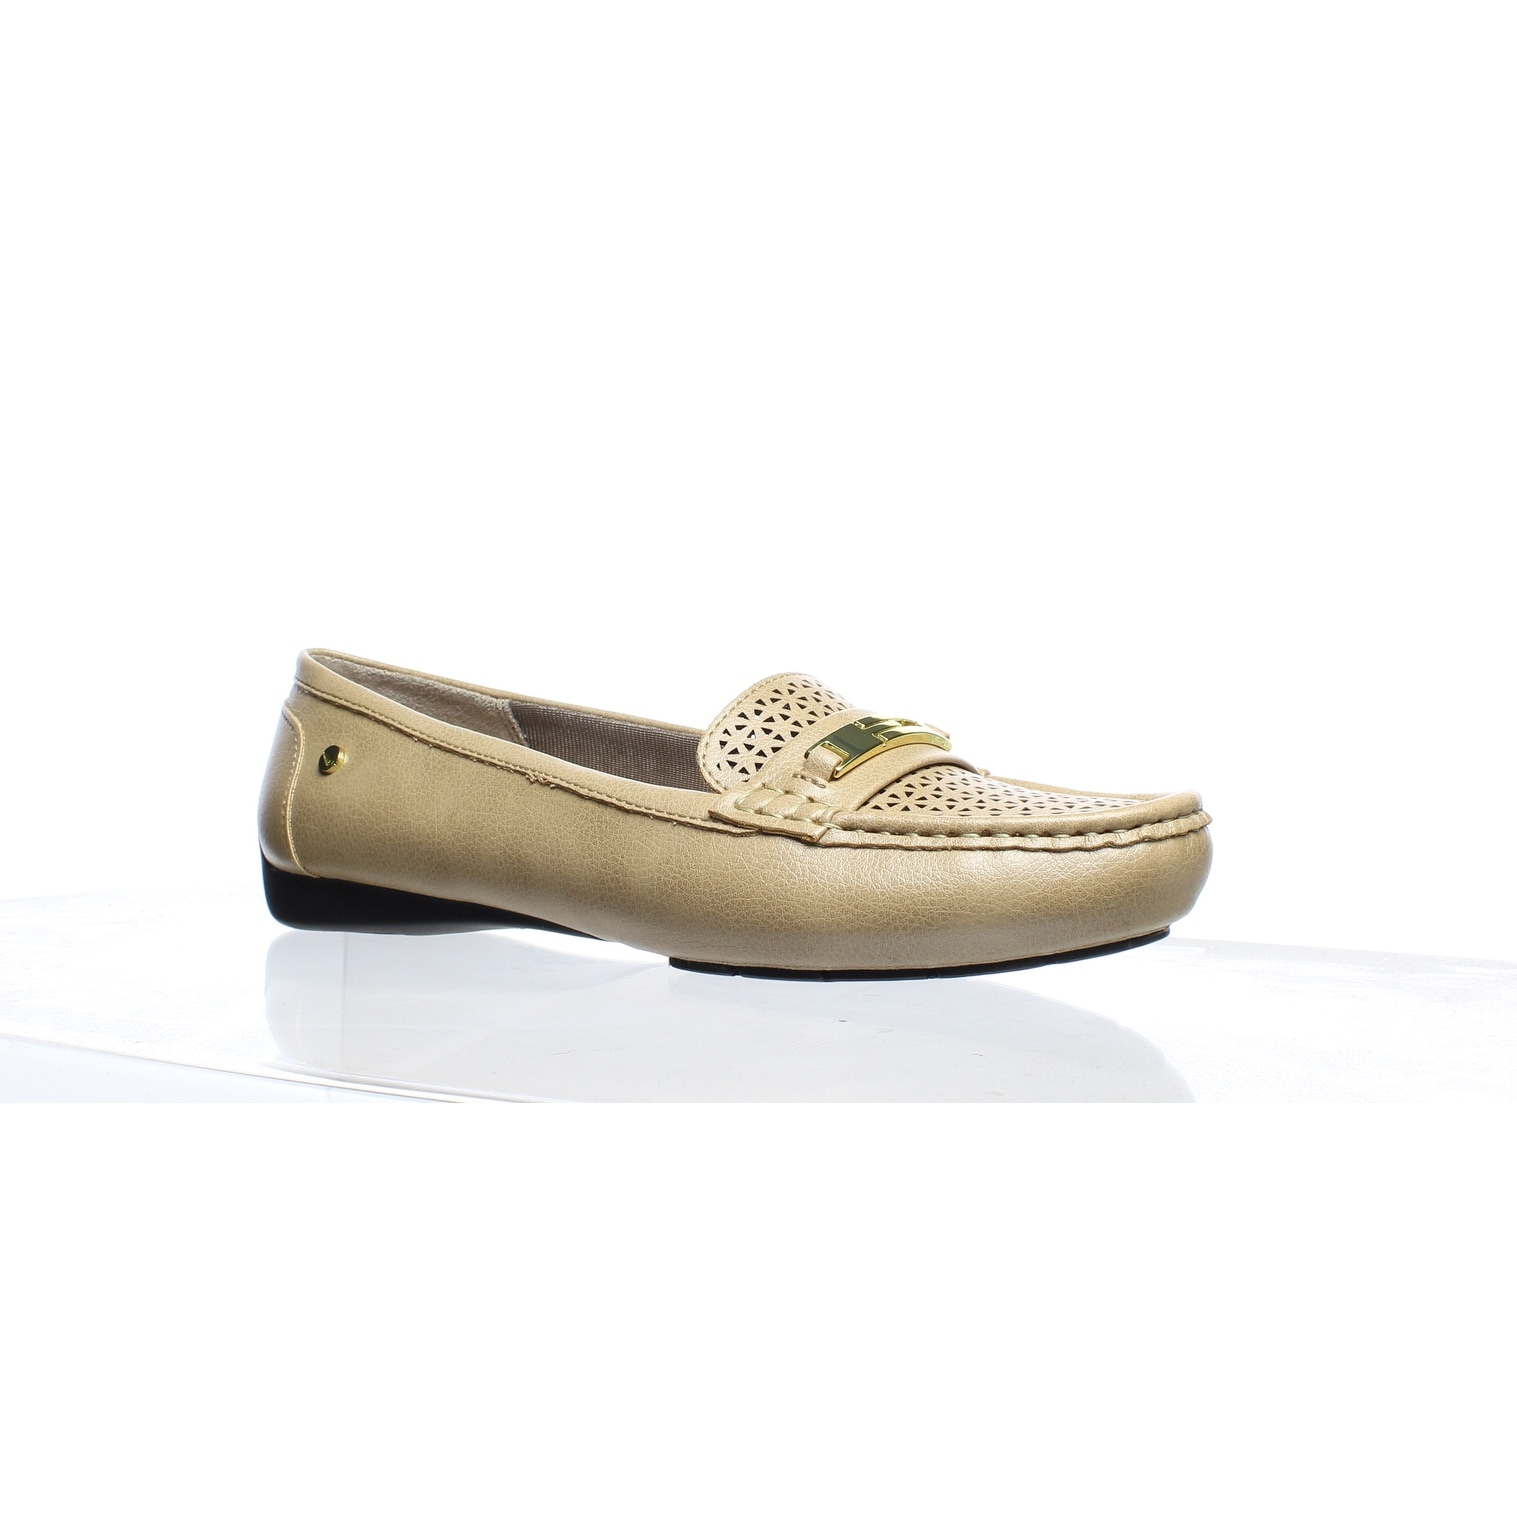 e225d8358a9 Shop LifeStride Womens Viva 2 Sand Loafers Size 9.5 - Free Shipping Today -  Overstock - 27986401